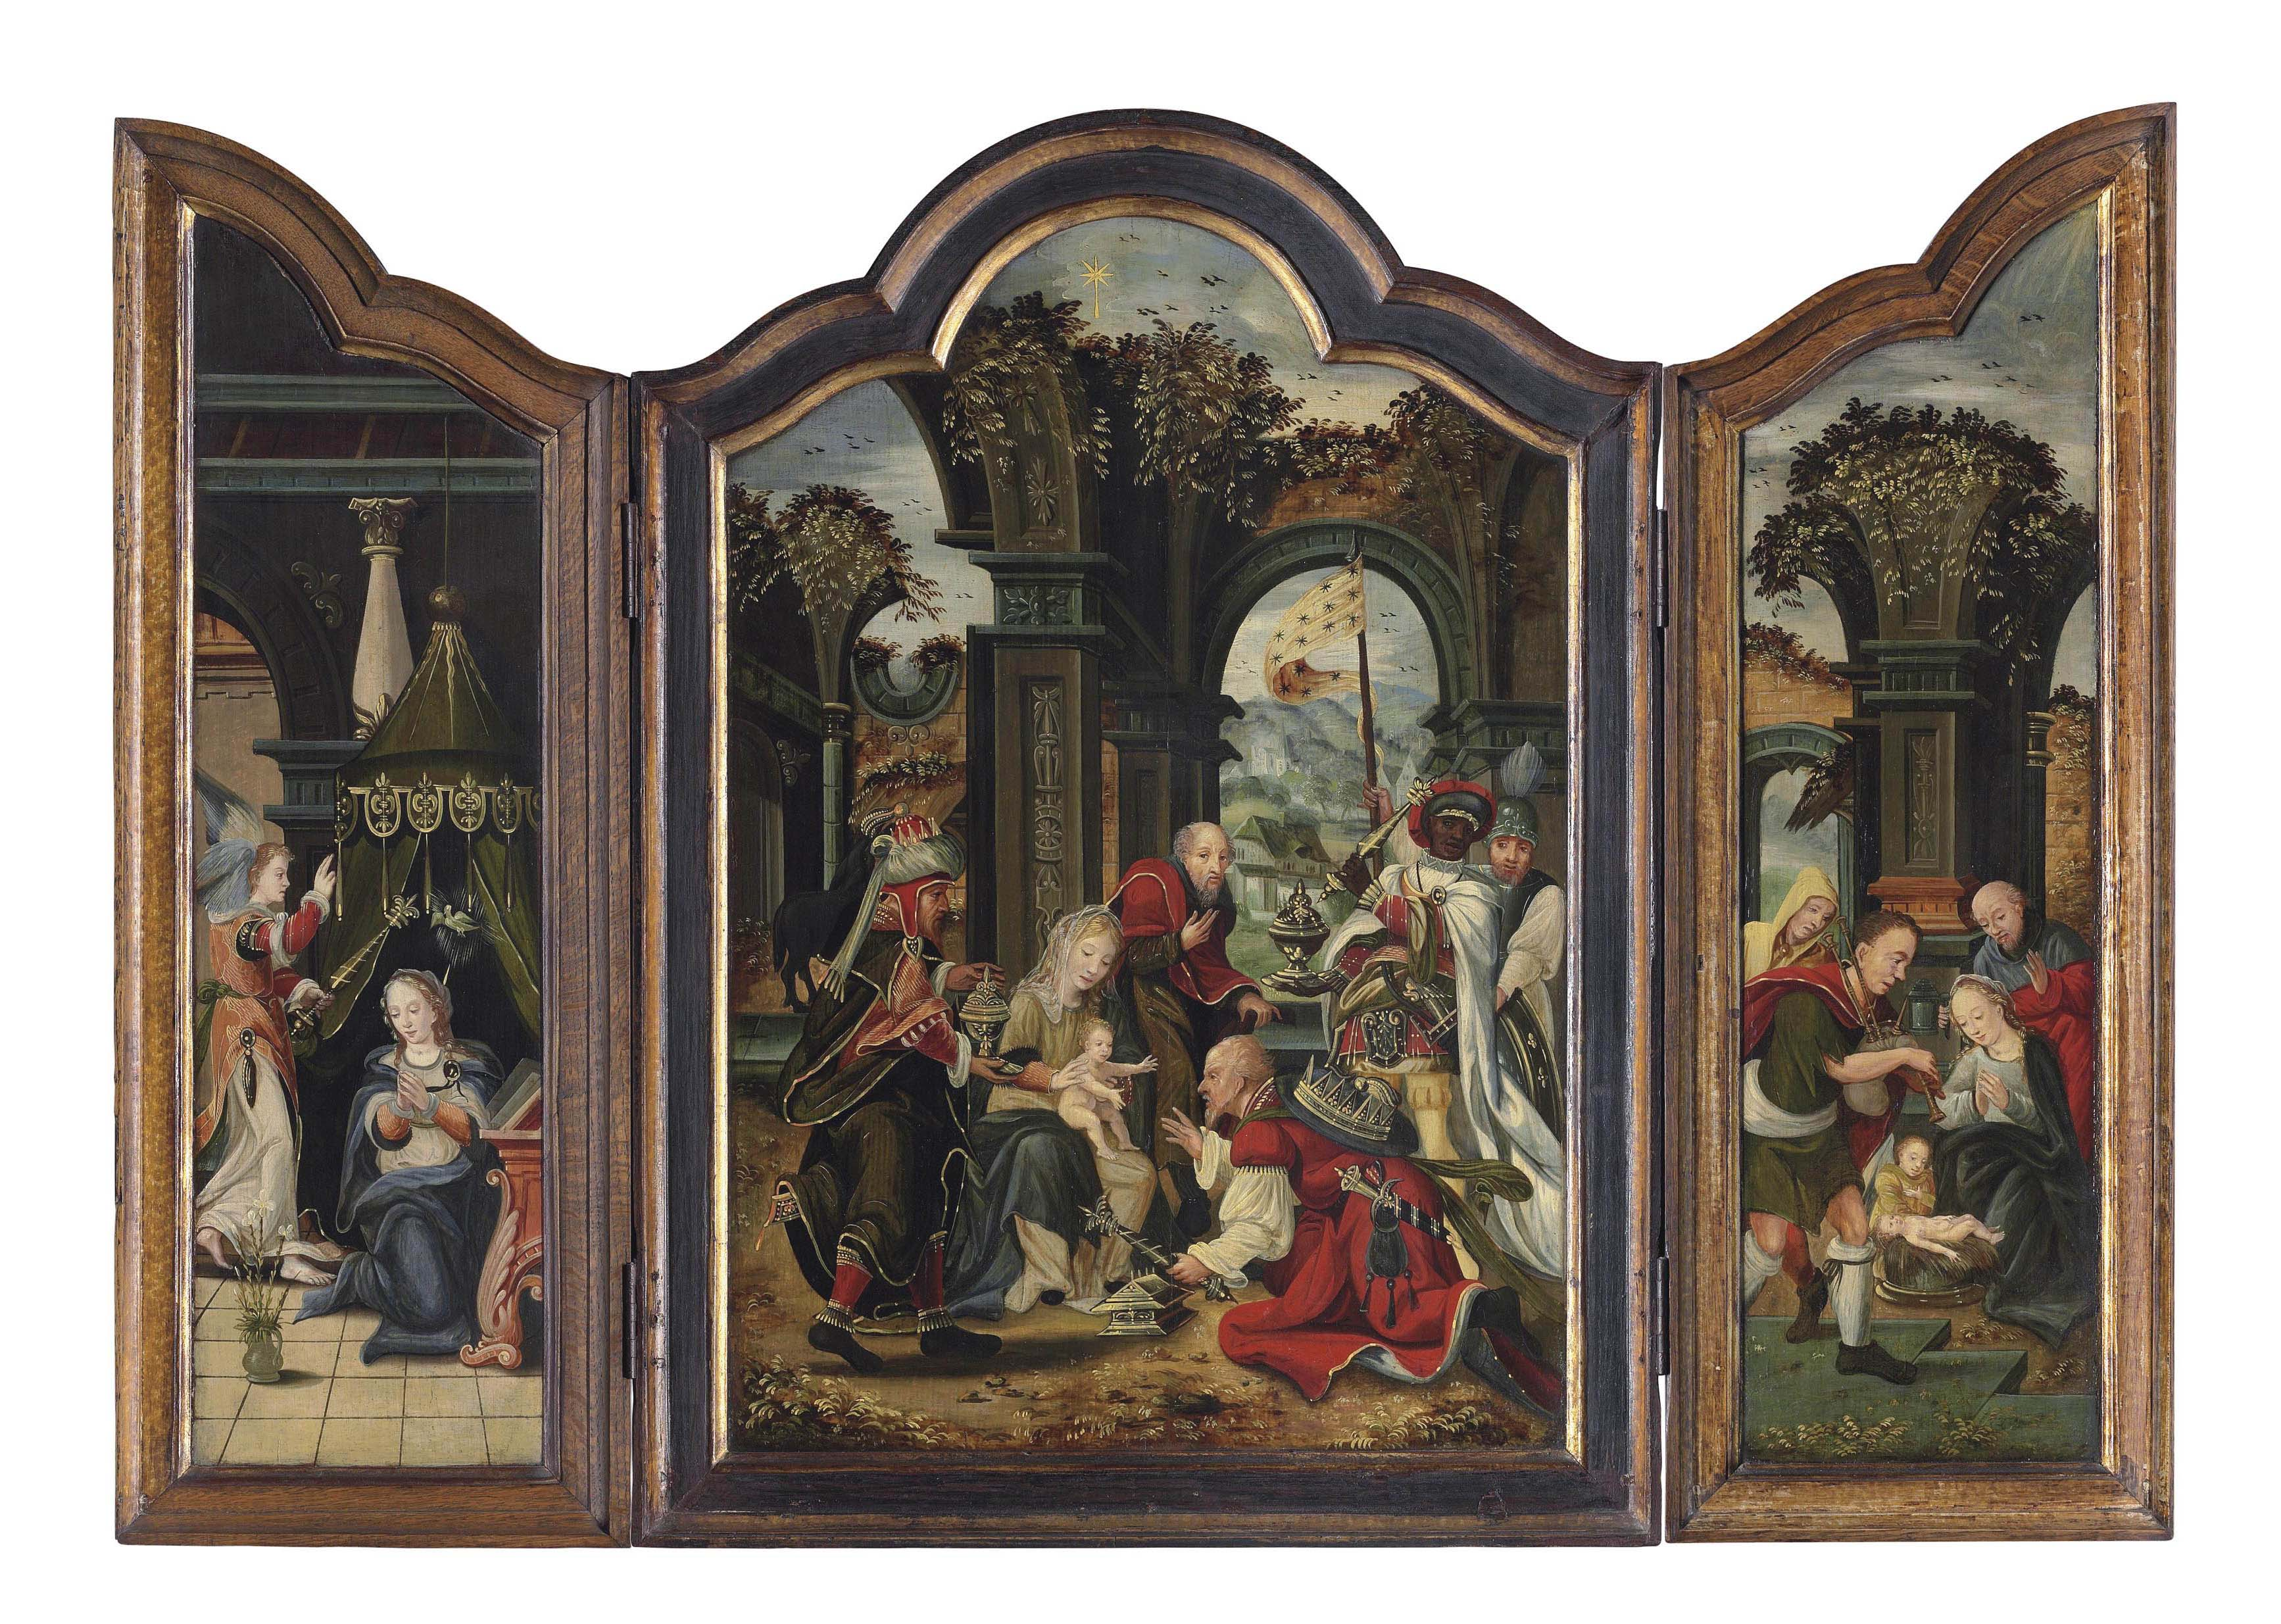 A triptych: central panel: The Adoration of the Magi; the wings: The Annunciation; and The Adoration of the Shepherds